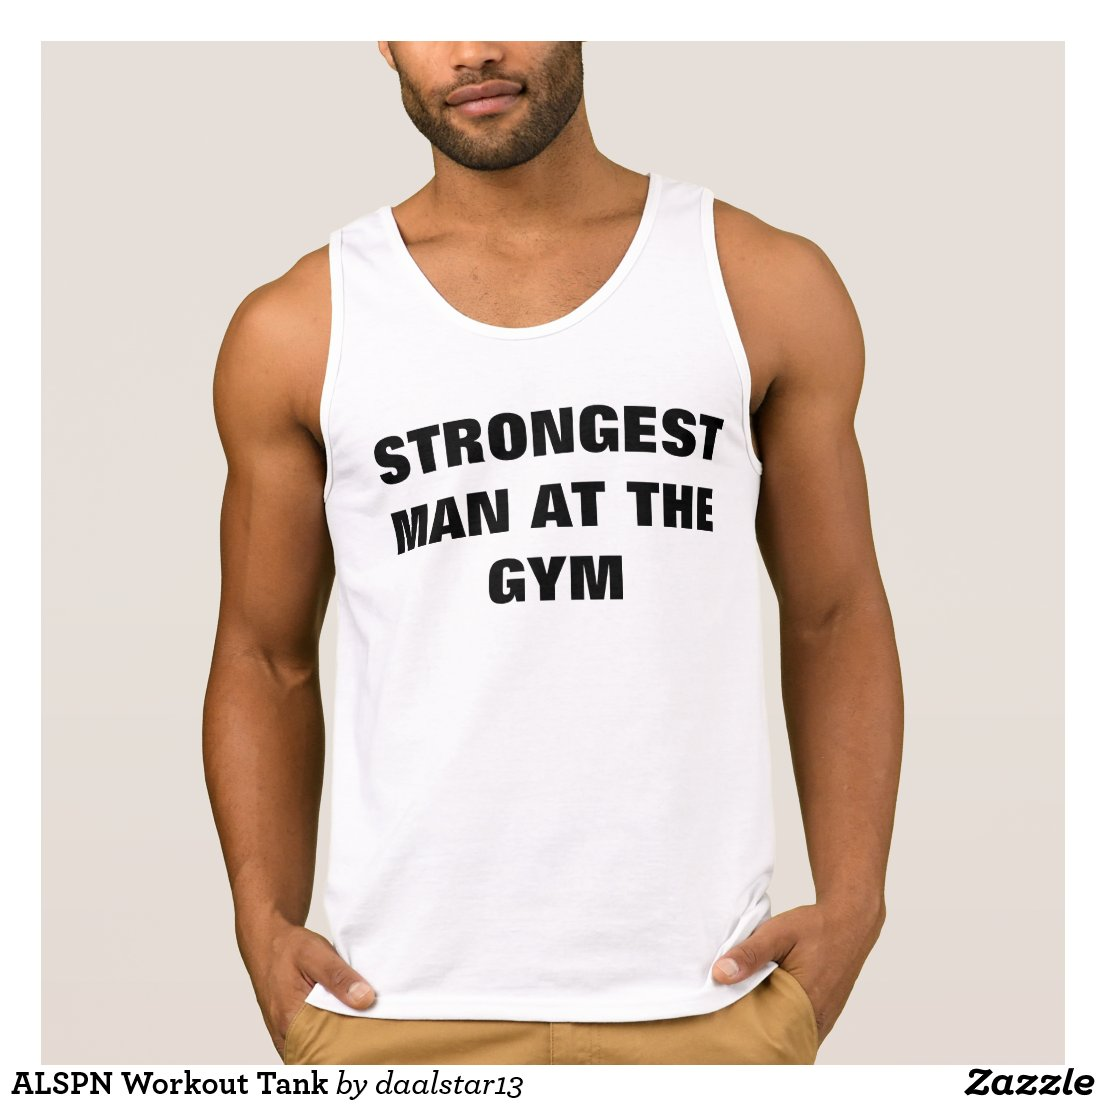 ALSPN Workout Tank